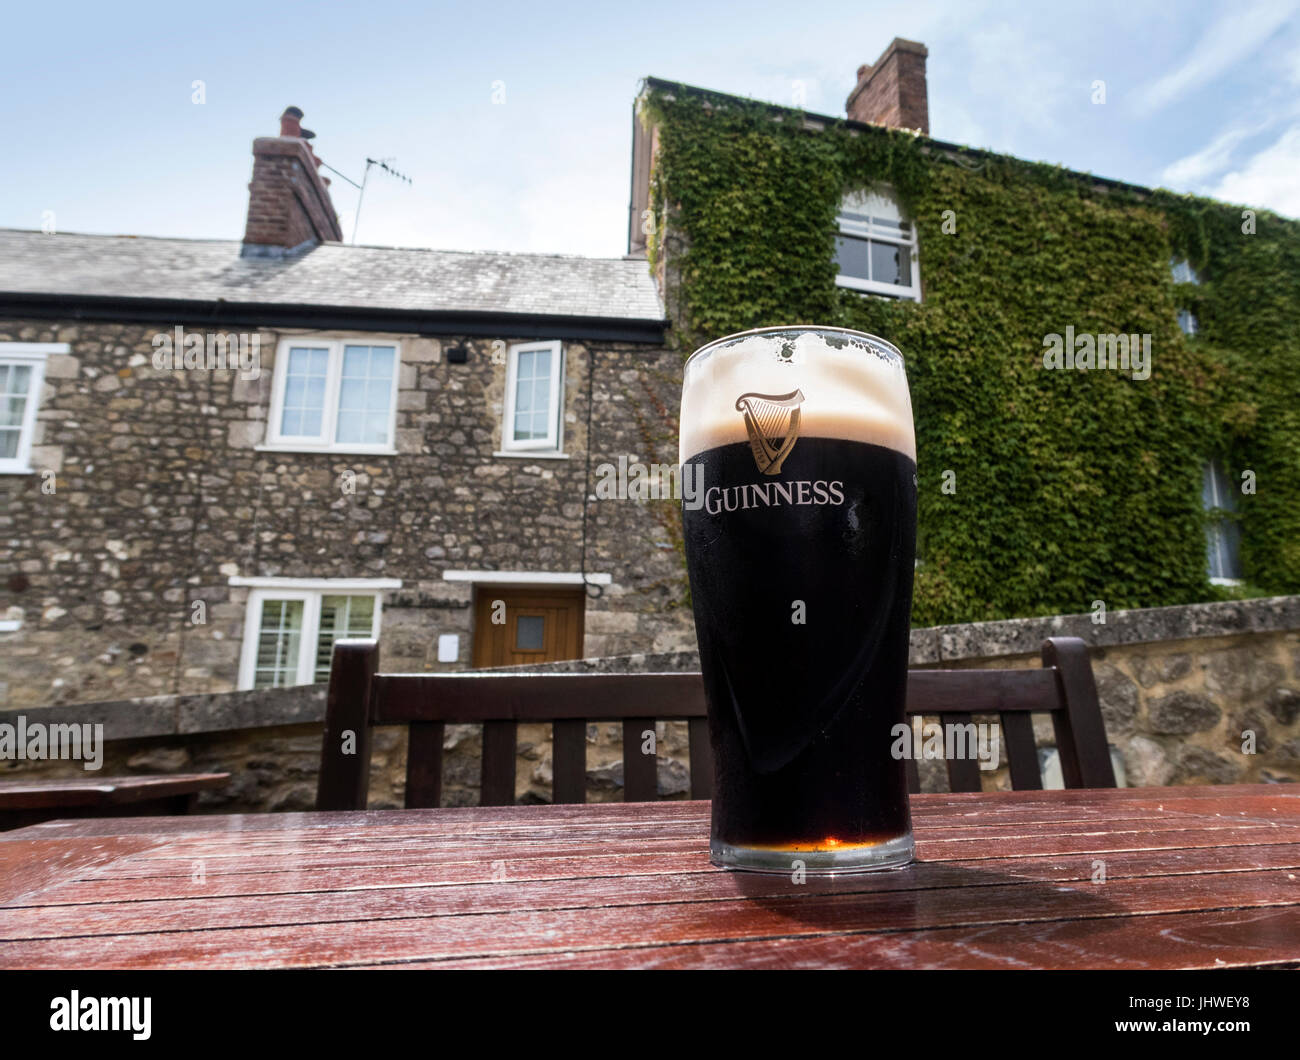 A pint of Guinness on a table outside a country pub. - Stock Image